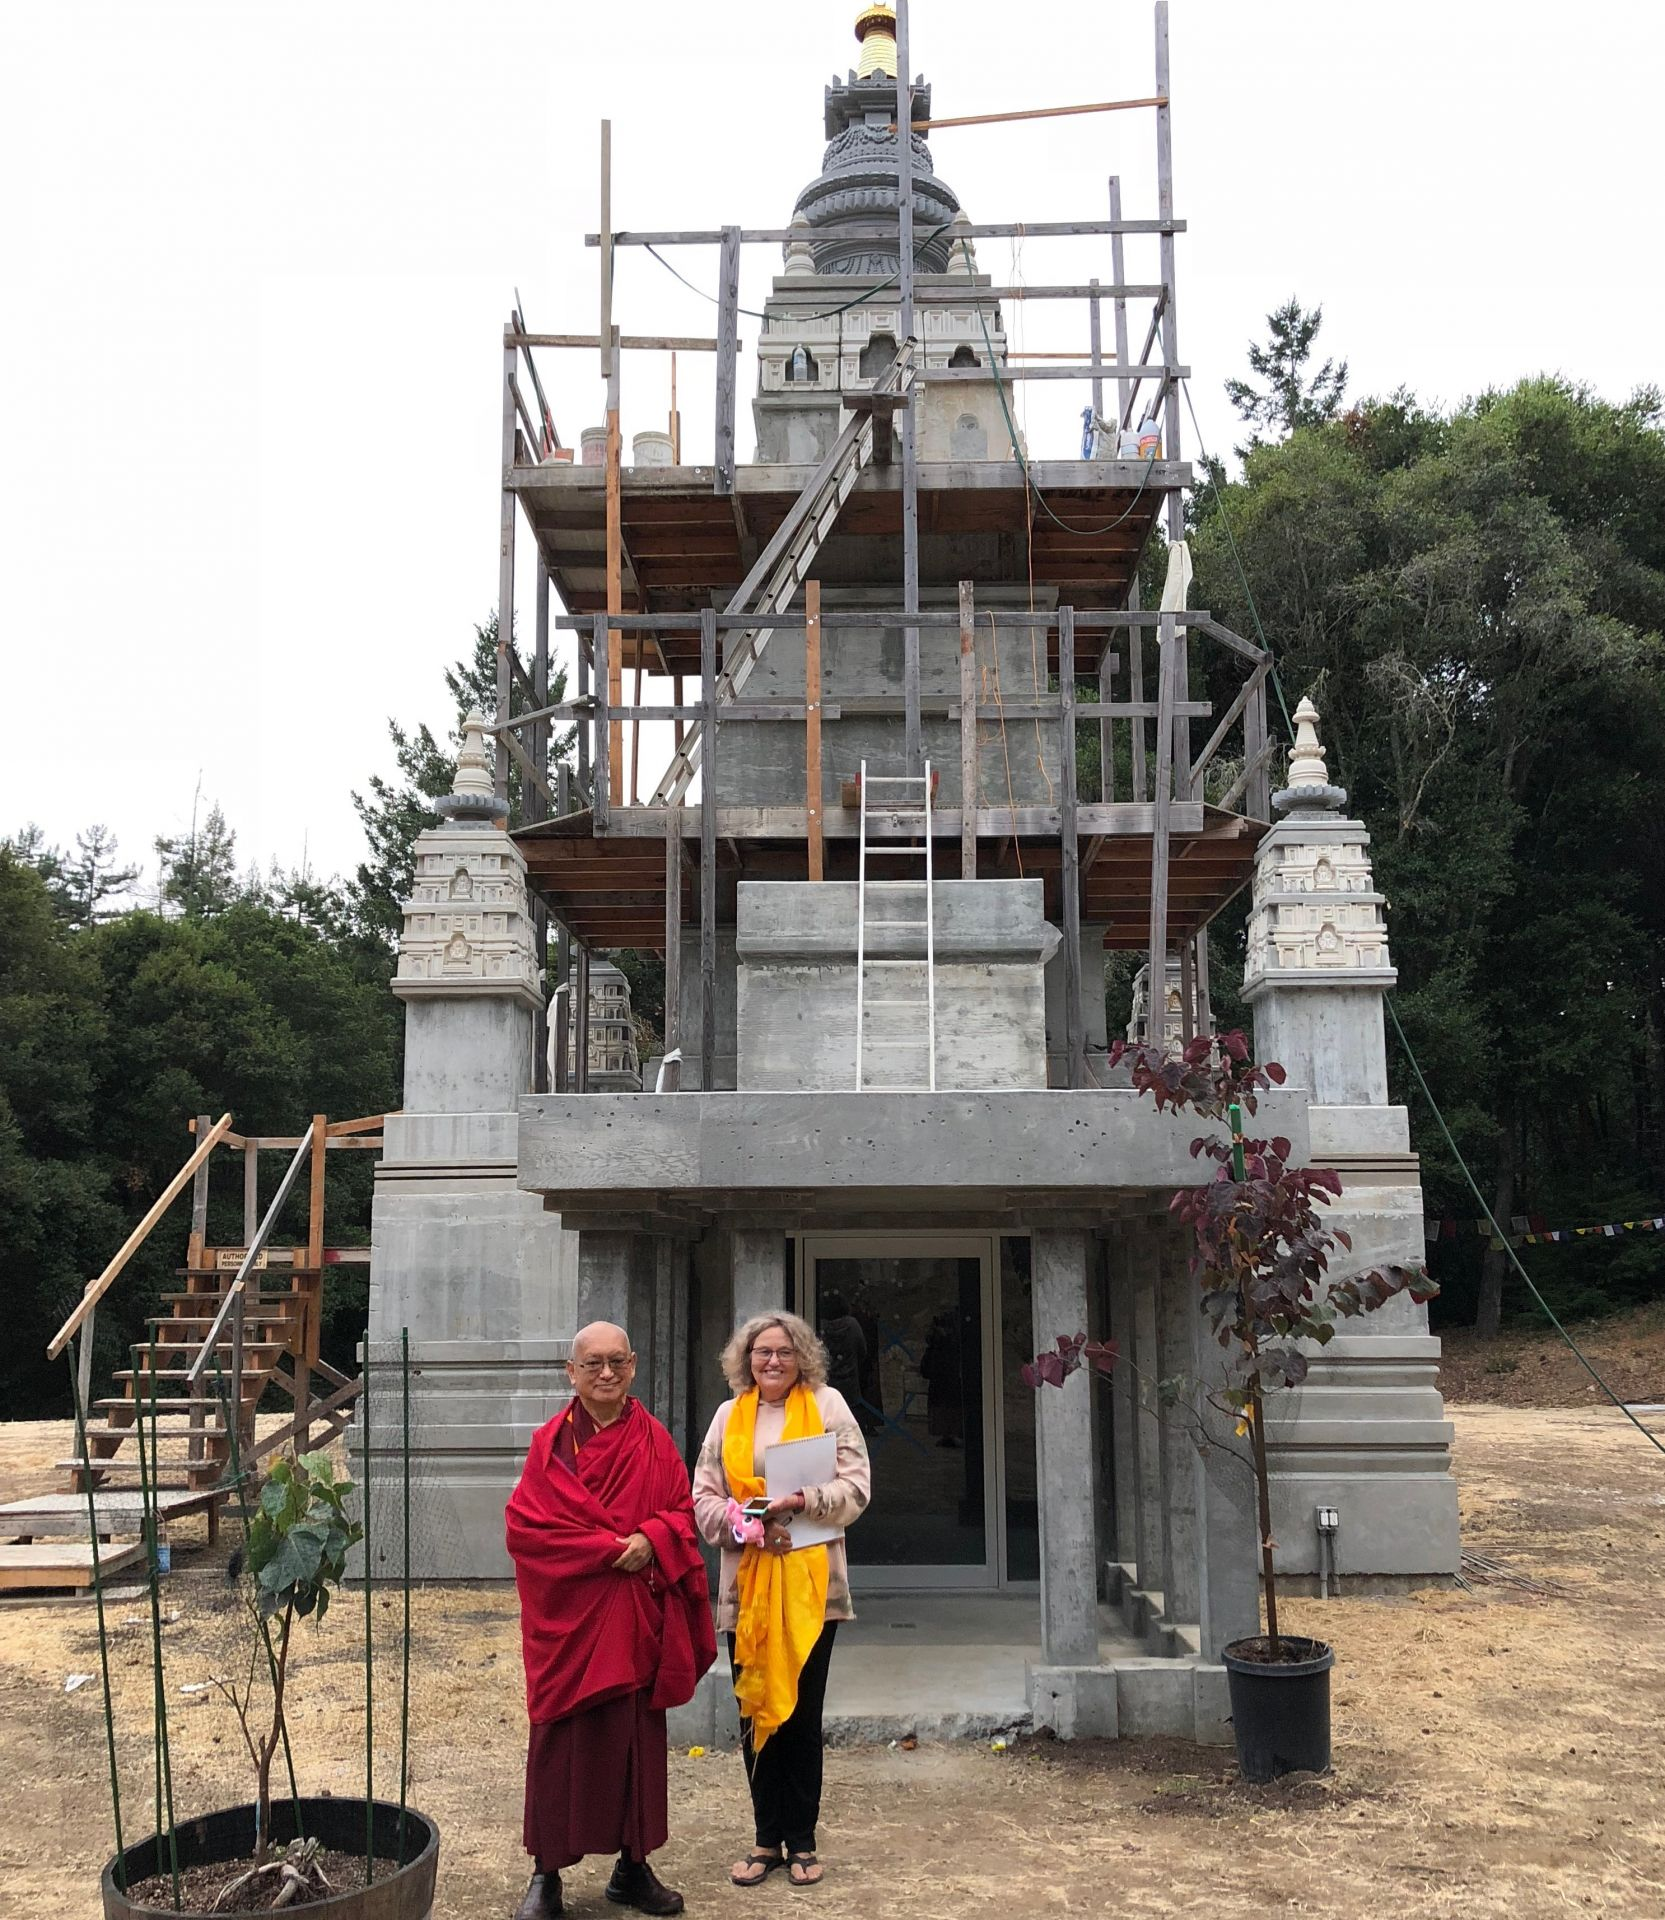 Progress Continues on Land of Medicine Buddha's Mahabodhi Stupa Project in California